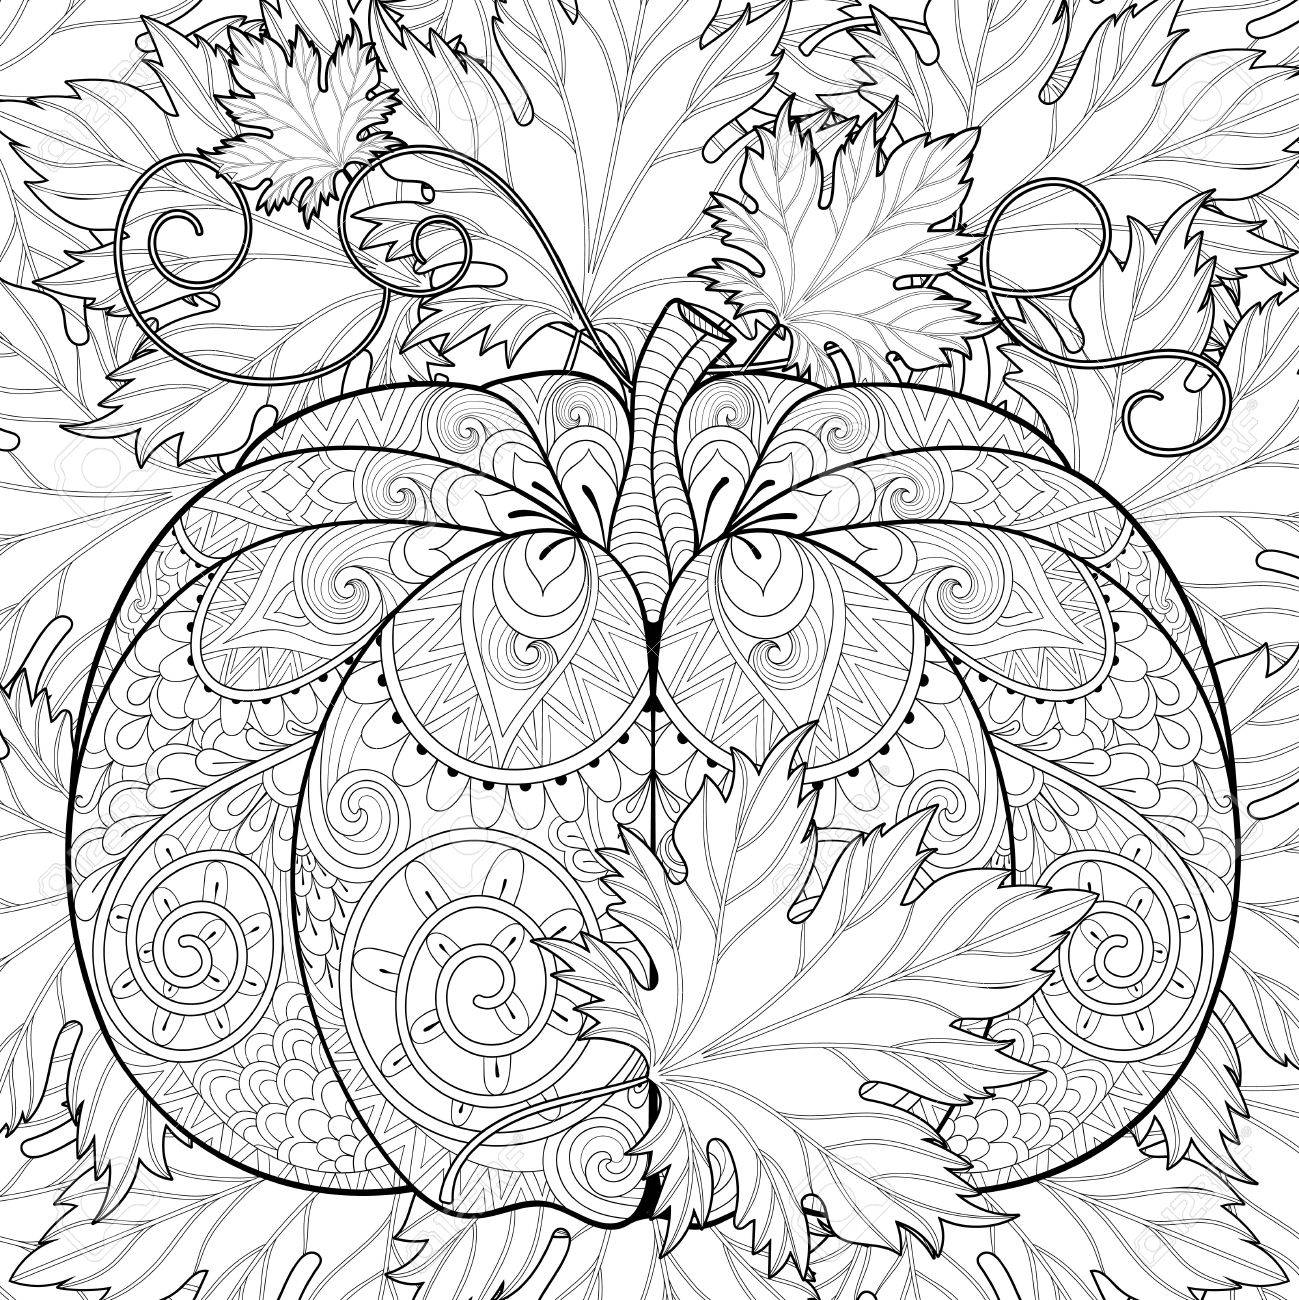 Coloriage Anti Stress Automne.Citrouille Stylise Sur Les Feuilles D Automne De Fond Pour L Halloween Croquis Freehand Pour Coloriage Anti Stress Adulte Withdoodle Elements